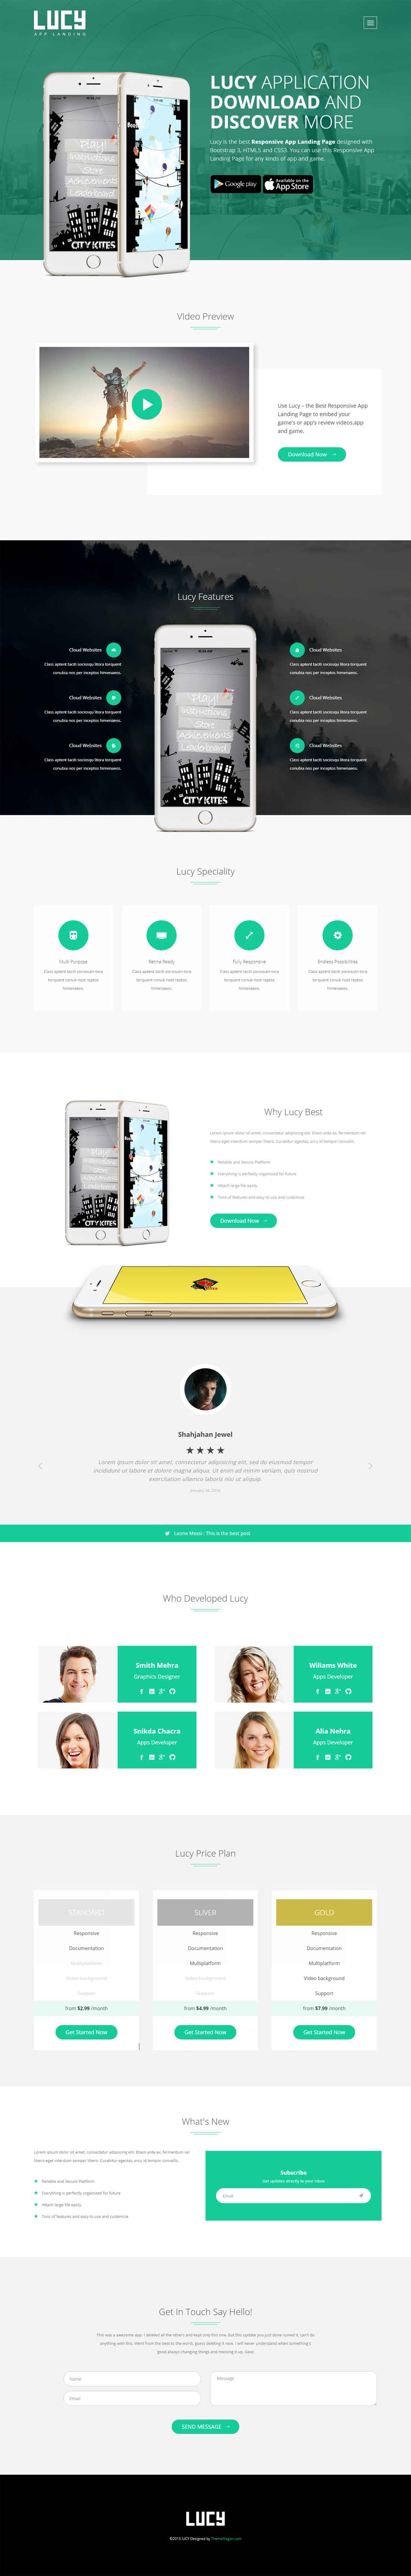 Lucy Pro – Premium Quality App Landing HTML5 Template